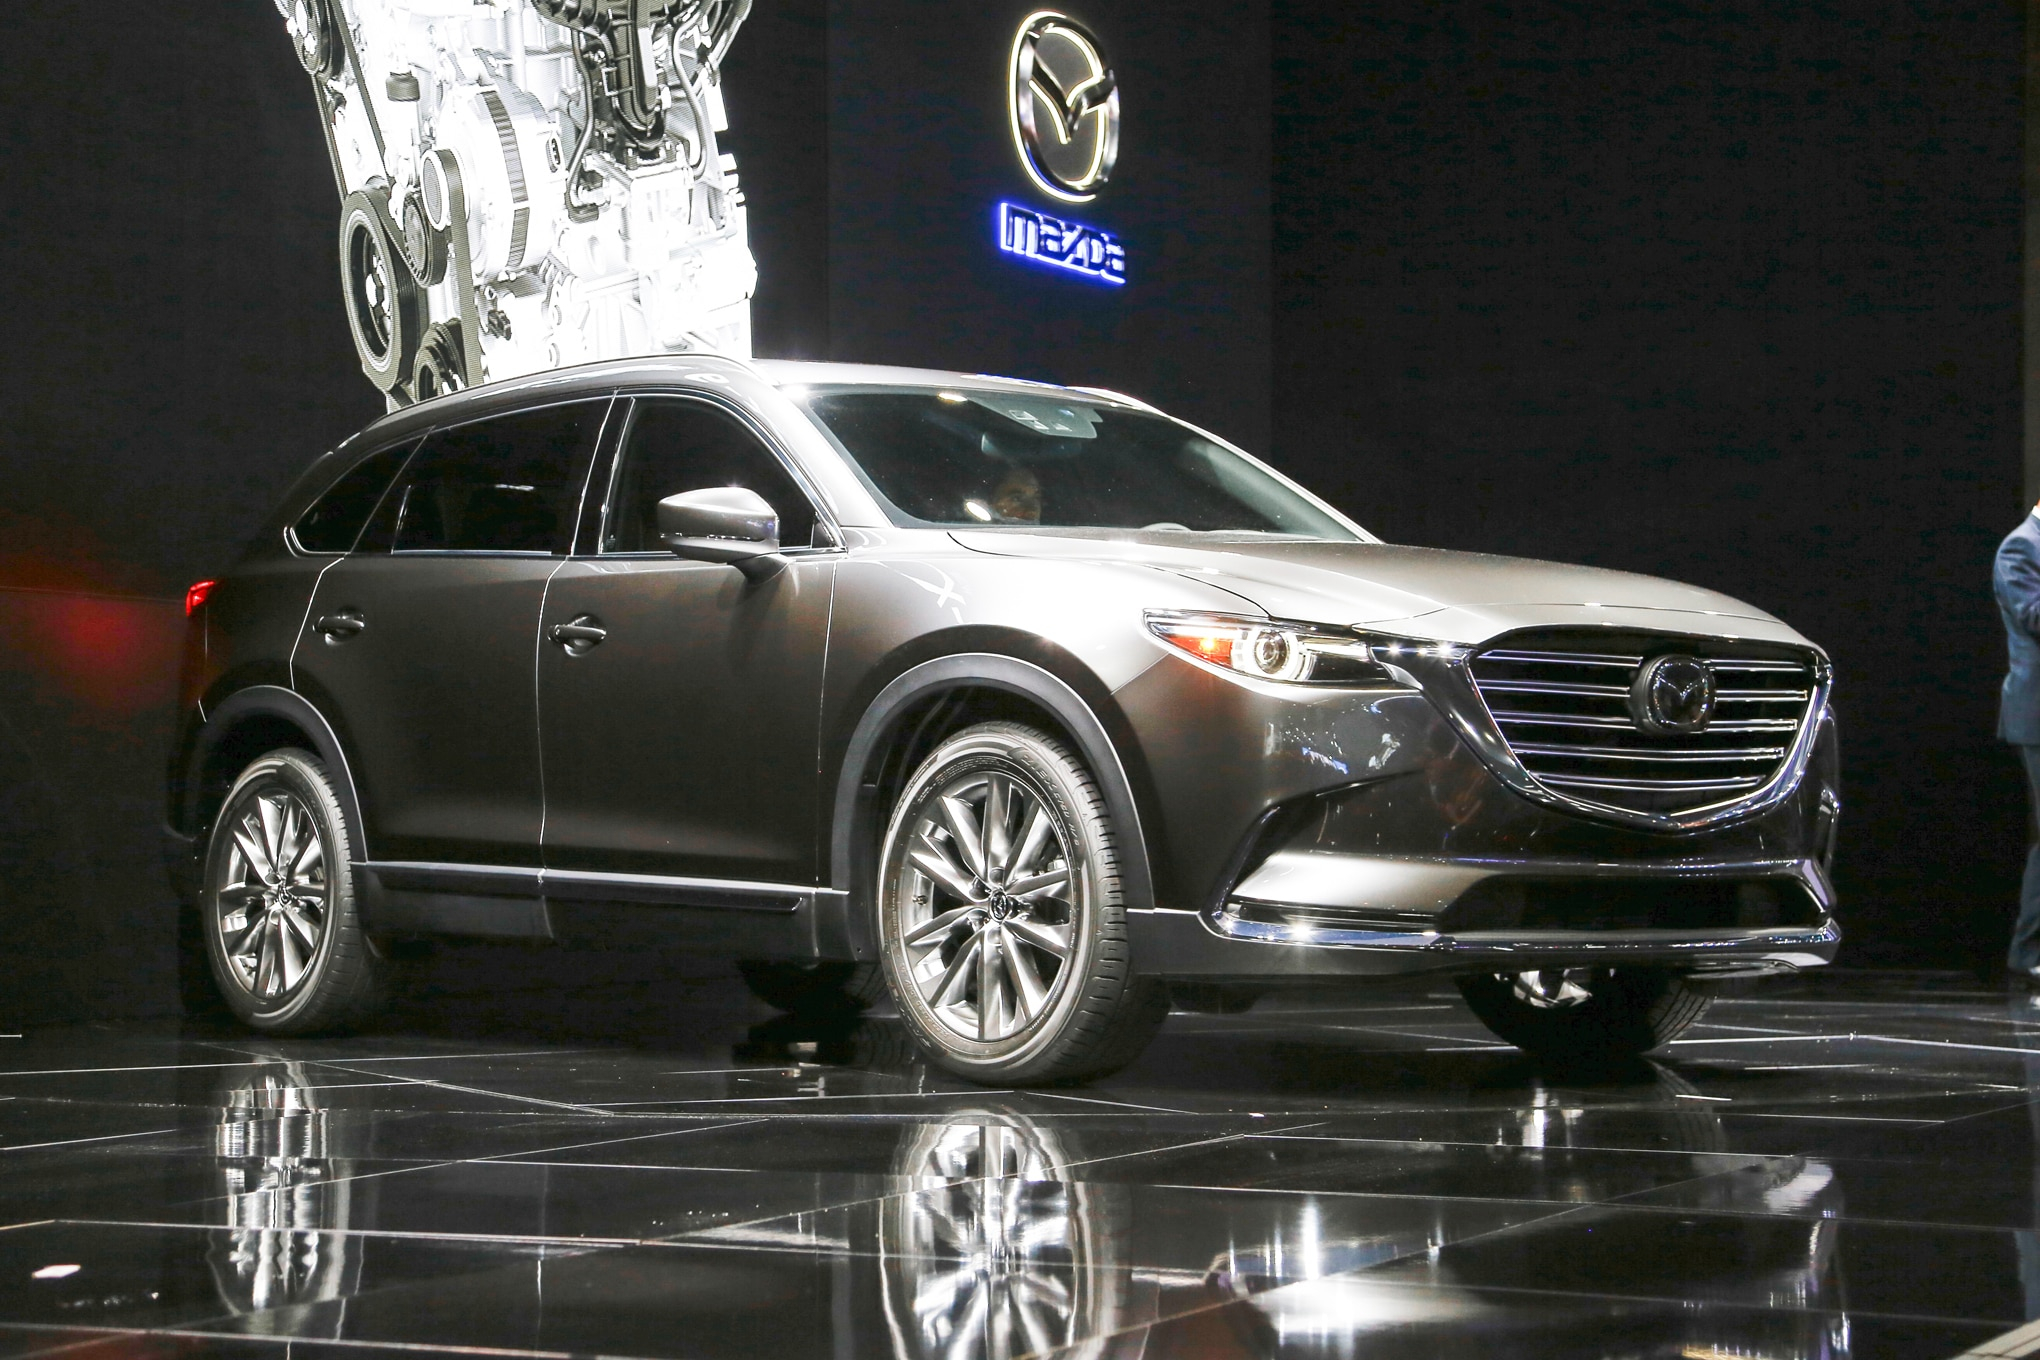 2016 mazda cx 9 hits l a show with fresh design new turbo engine. Black Bedroom Furniture Sets. Home Design Ideas